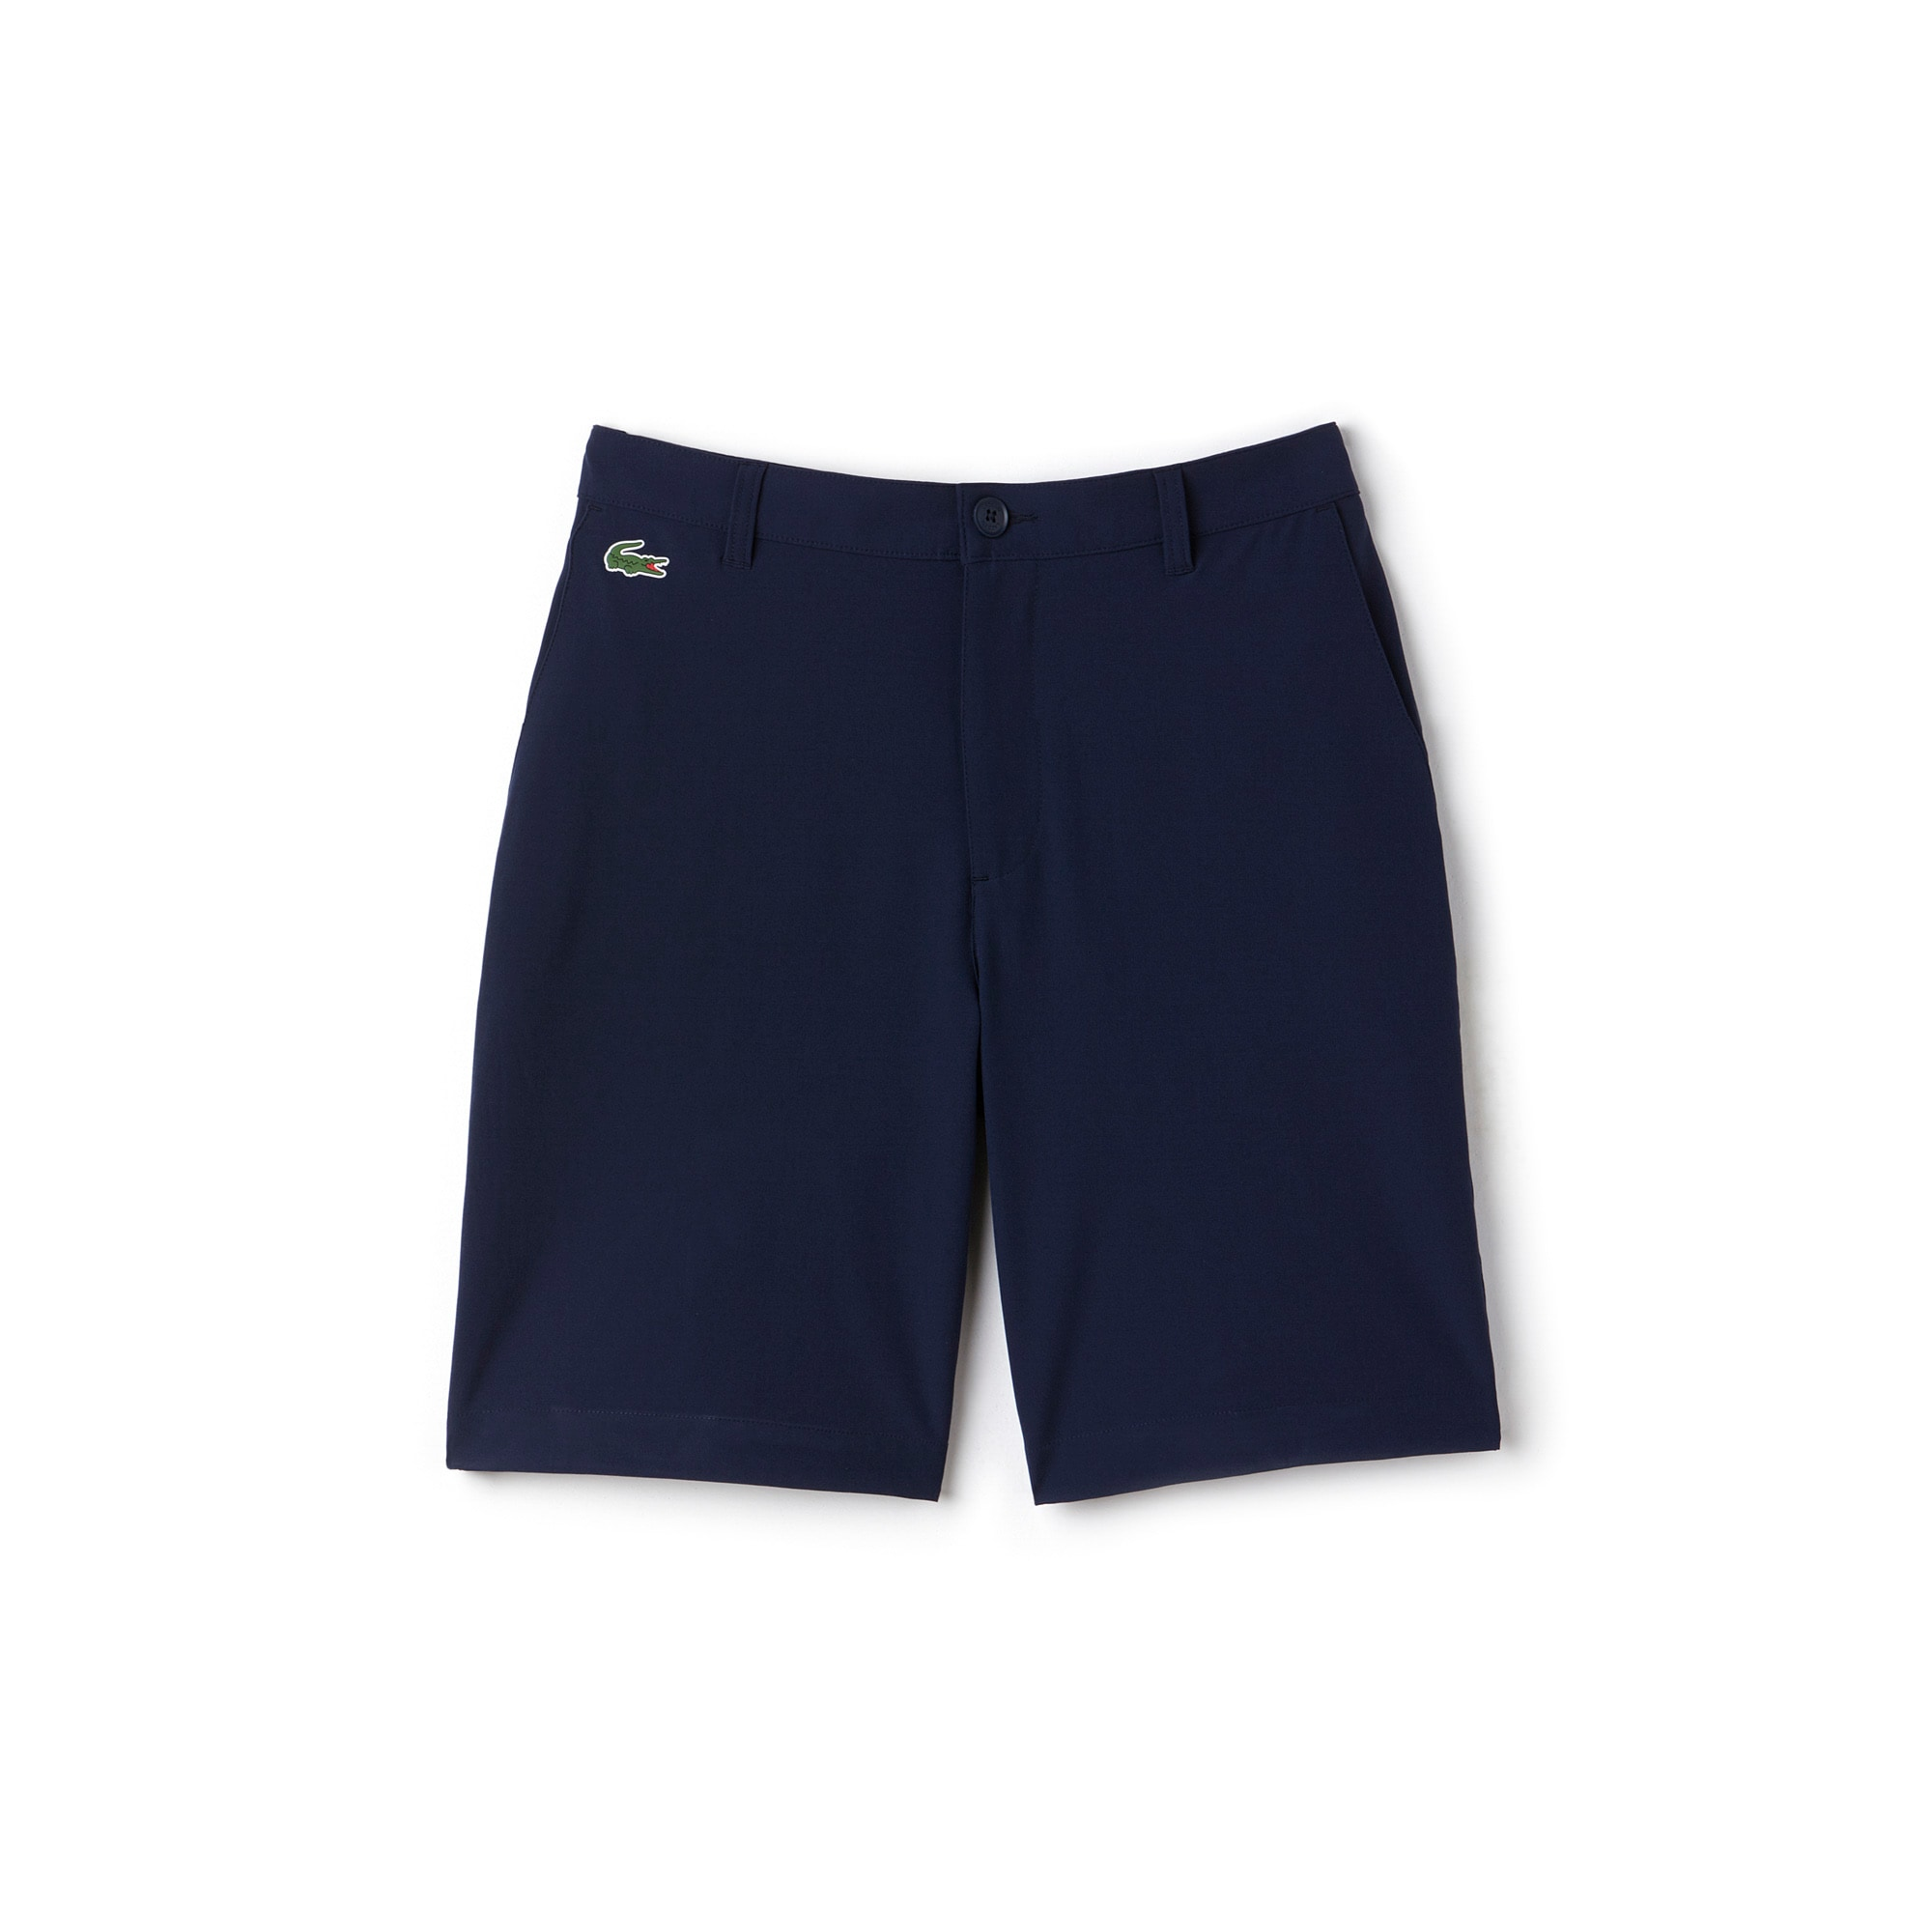 Men's Lacoste SPORT Golf Stretch Bermudas